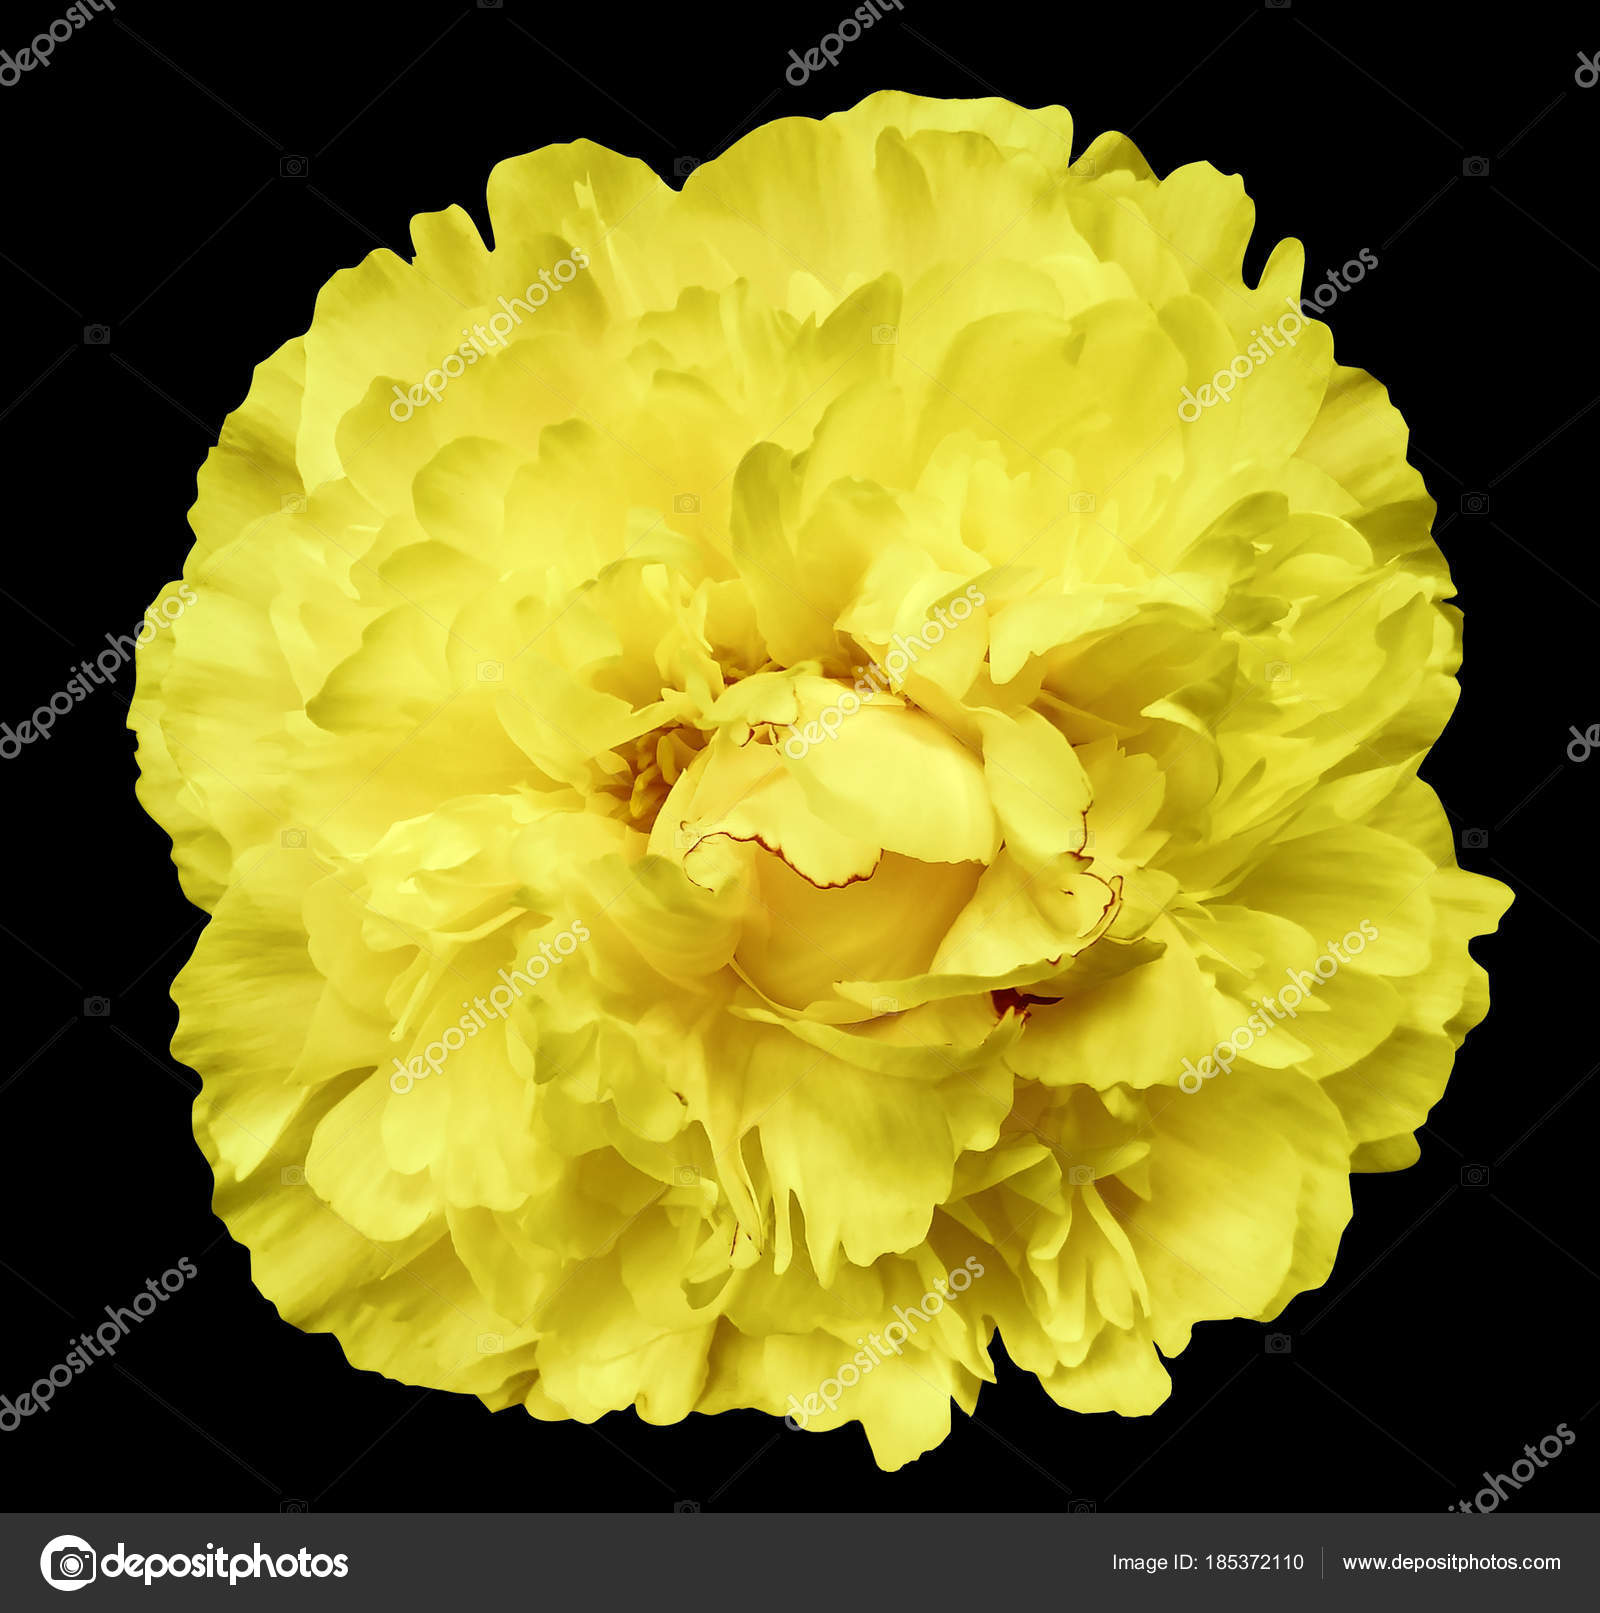 Peony Flower Yellow Black Isolated Background Clipping Path Nature